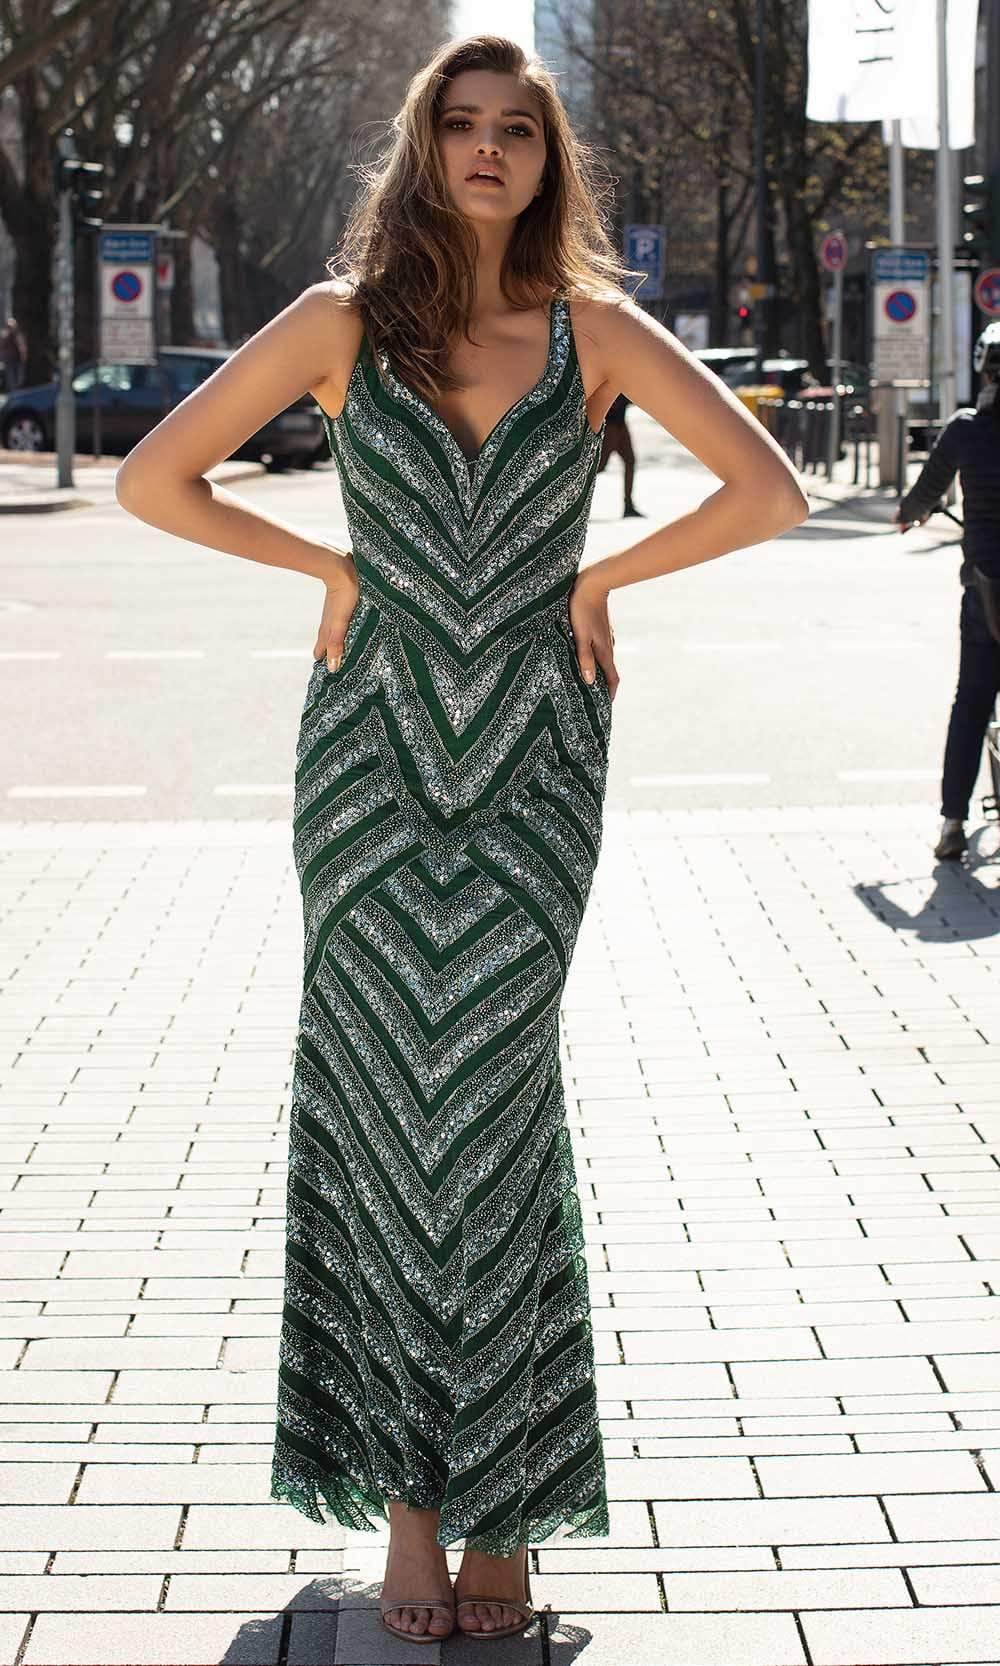 Chic and Holland - AN1415 Chevron Beaded Scoop Back Dress from Chic and Holland